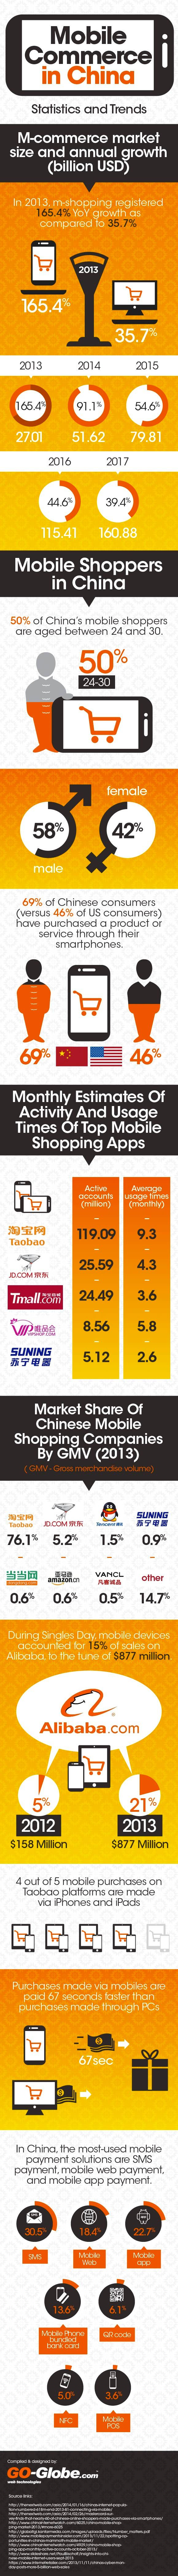 mobile-commerce-in-china-infographic